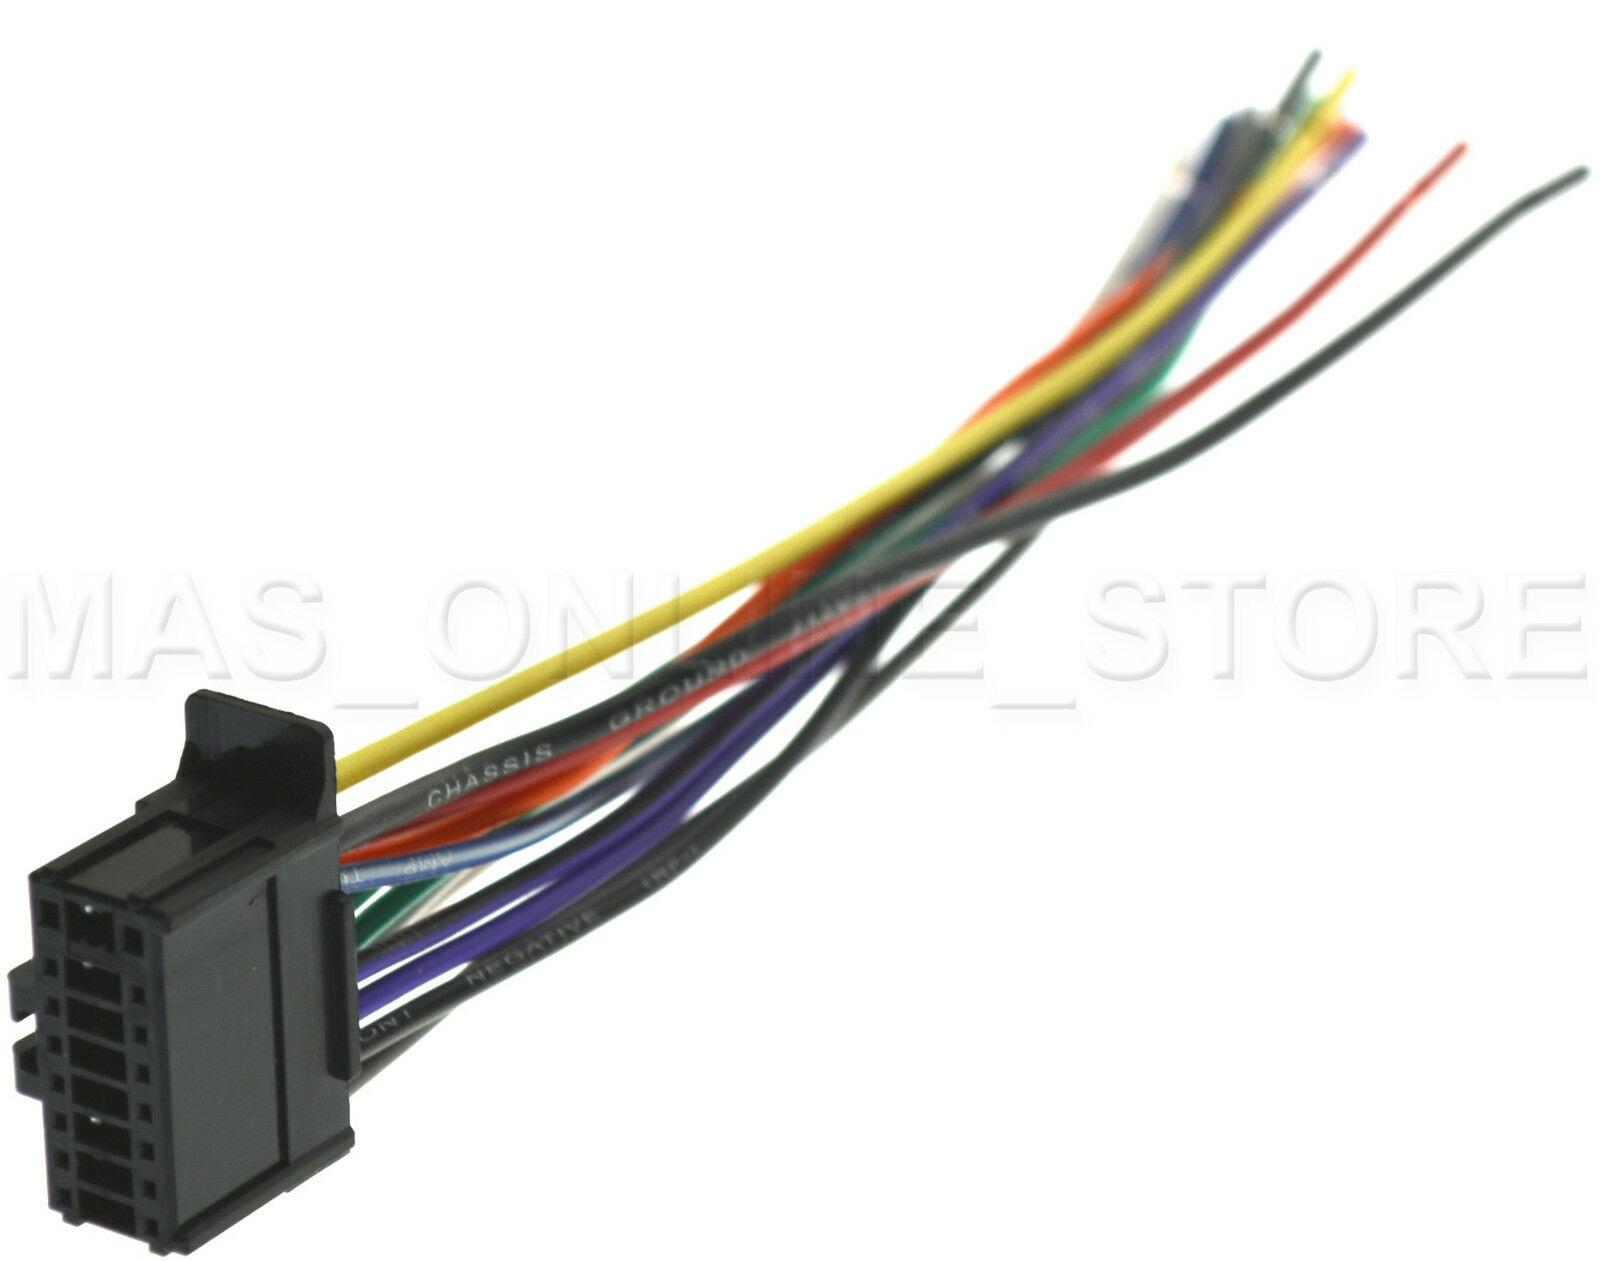 s l1600 wire harness for pioneer deh x9500bhs dehx9500bhs deh x9600bhs pioneer deh-x9600bhs wiring diagram at eliteediting.co